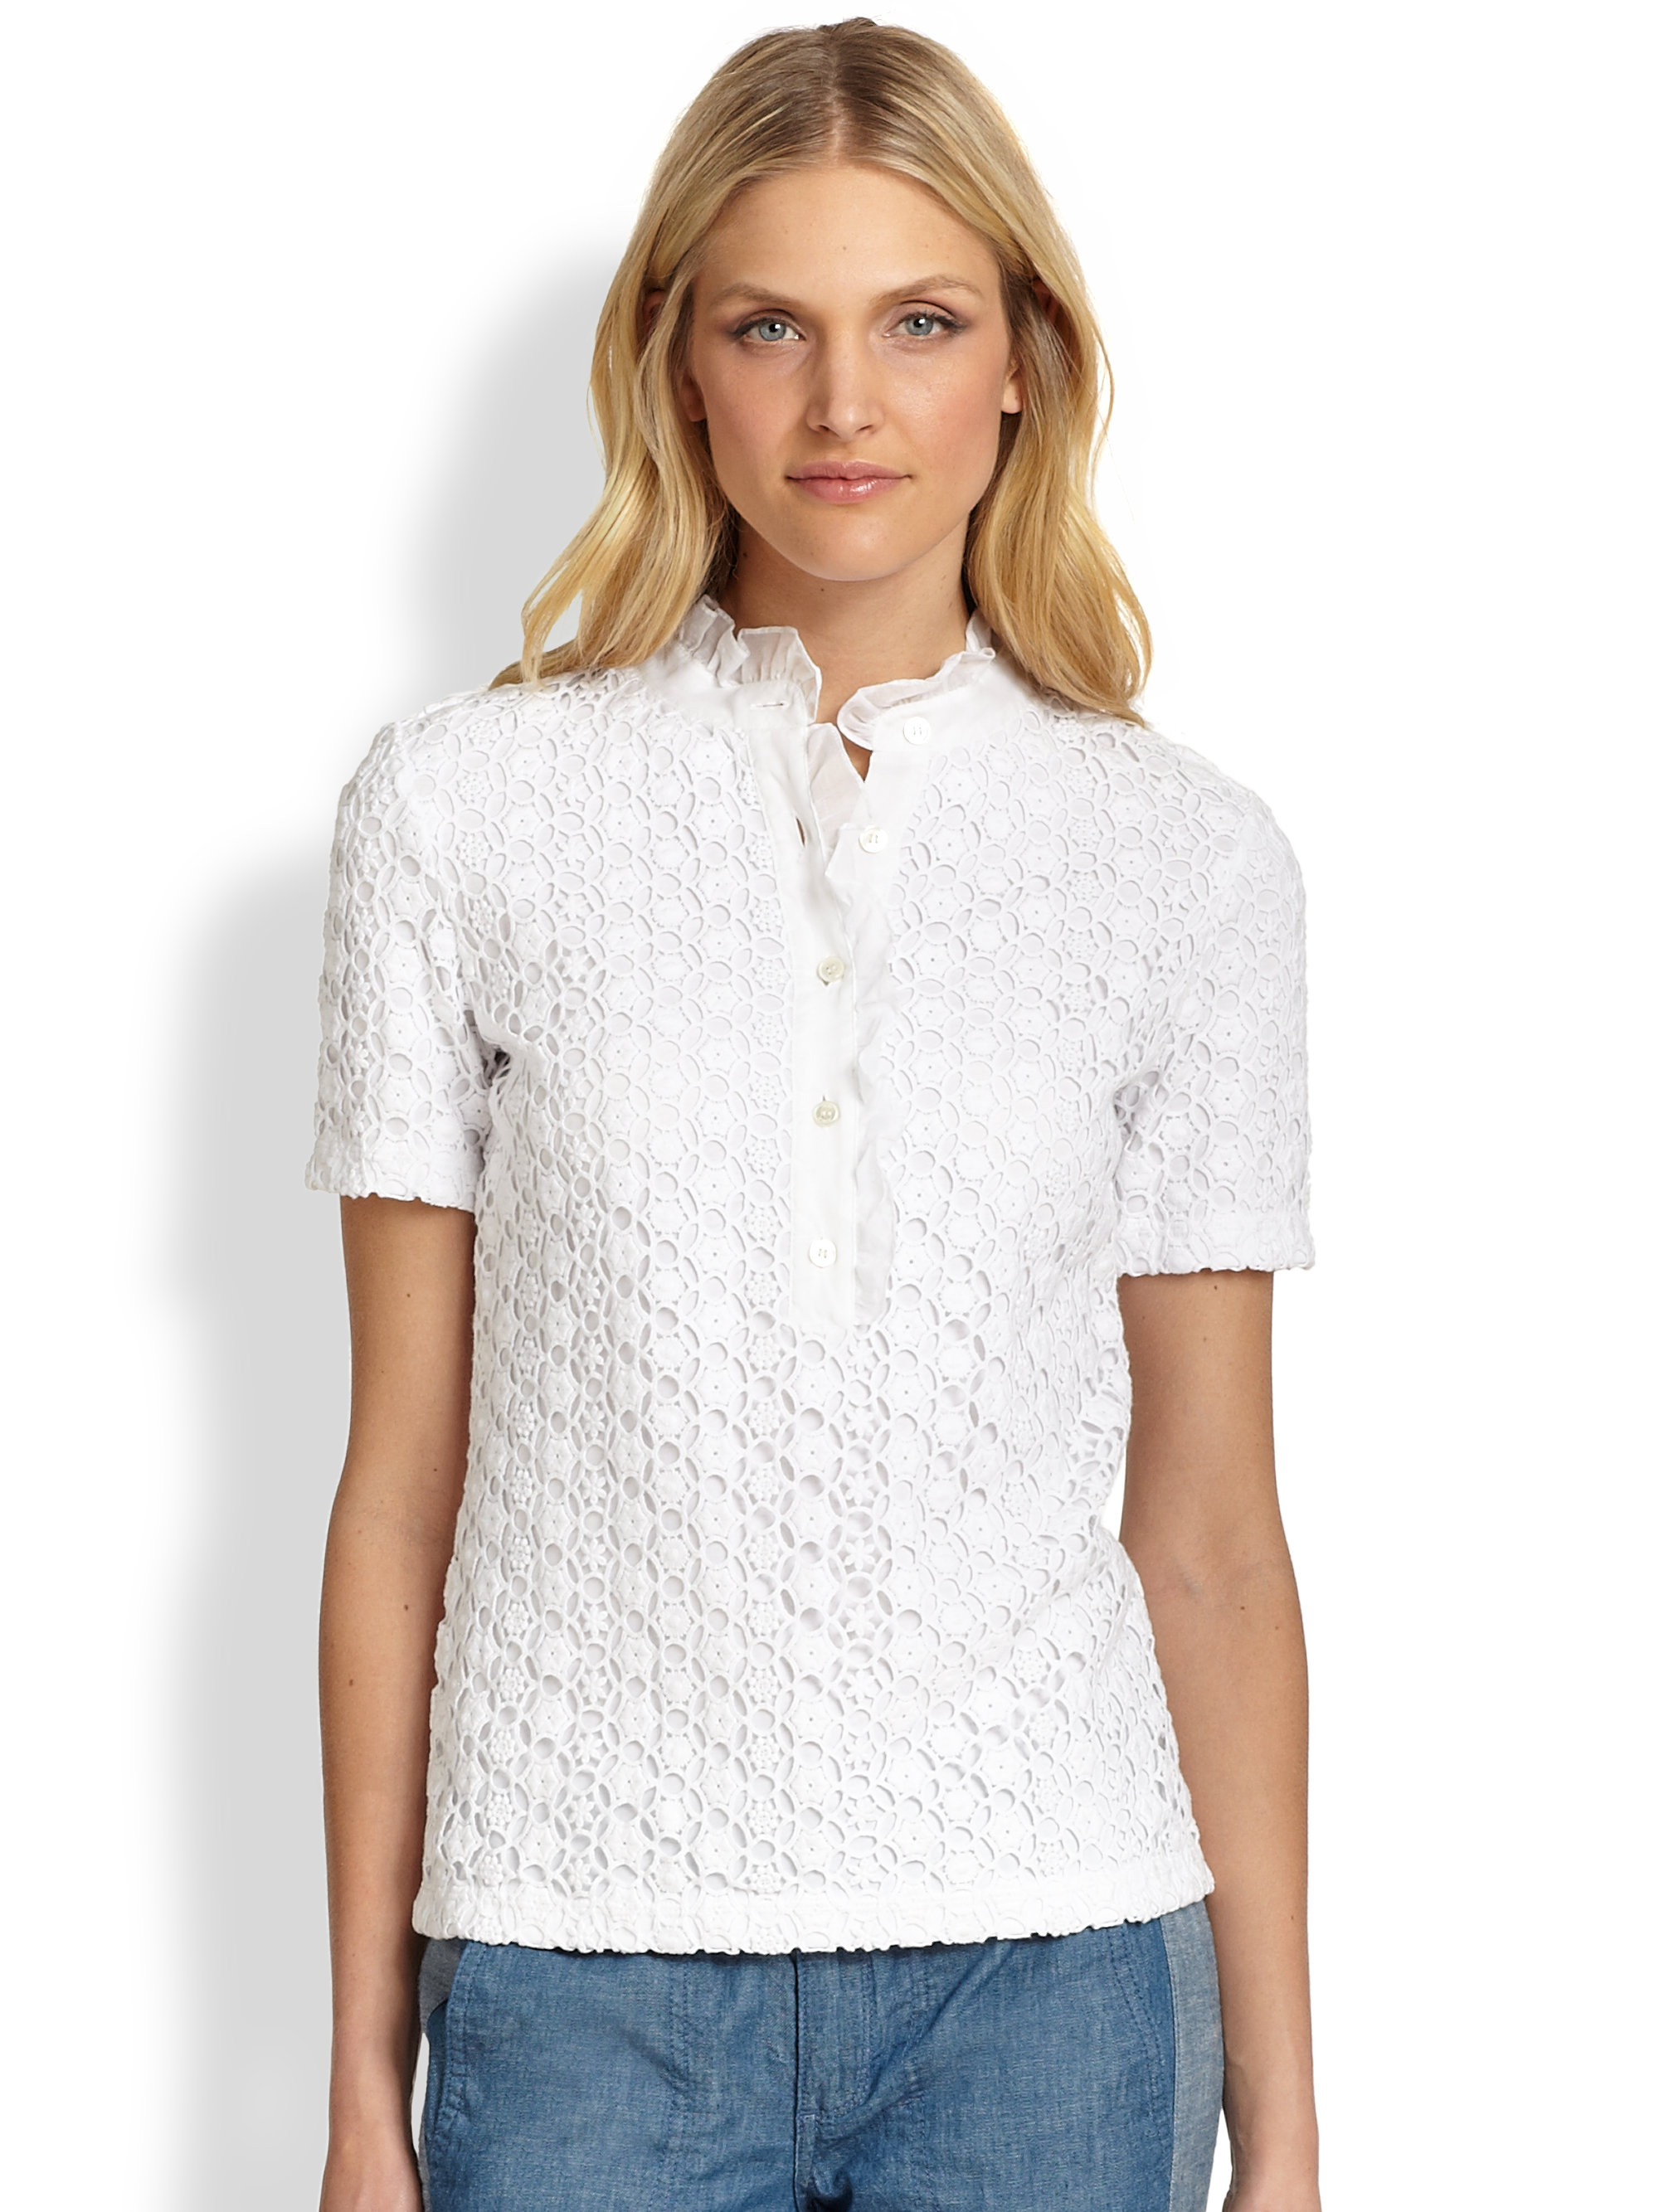 Tory Burch Lidia Lace Polo Shirt In White Lyst